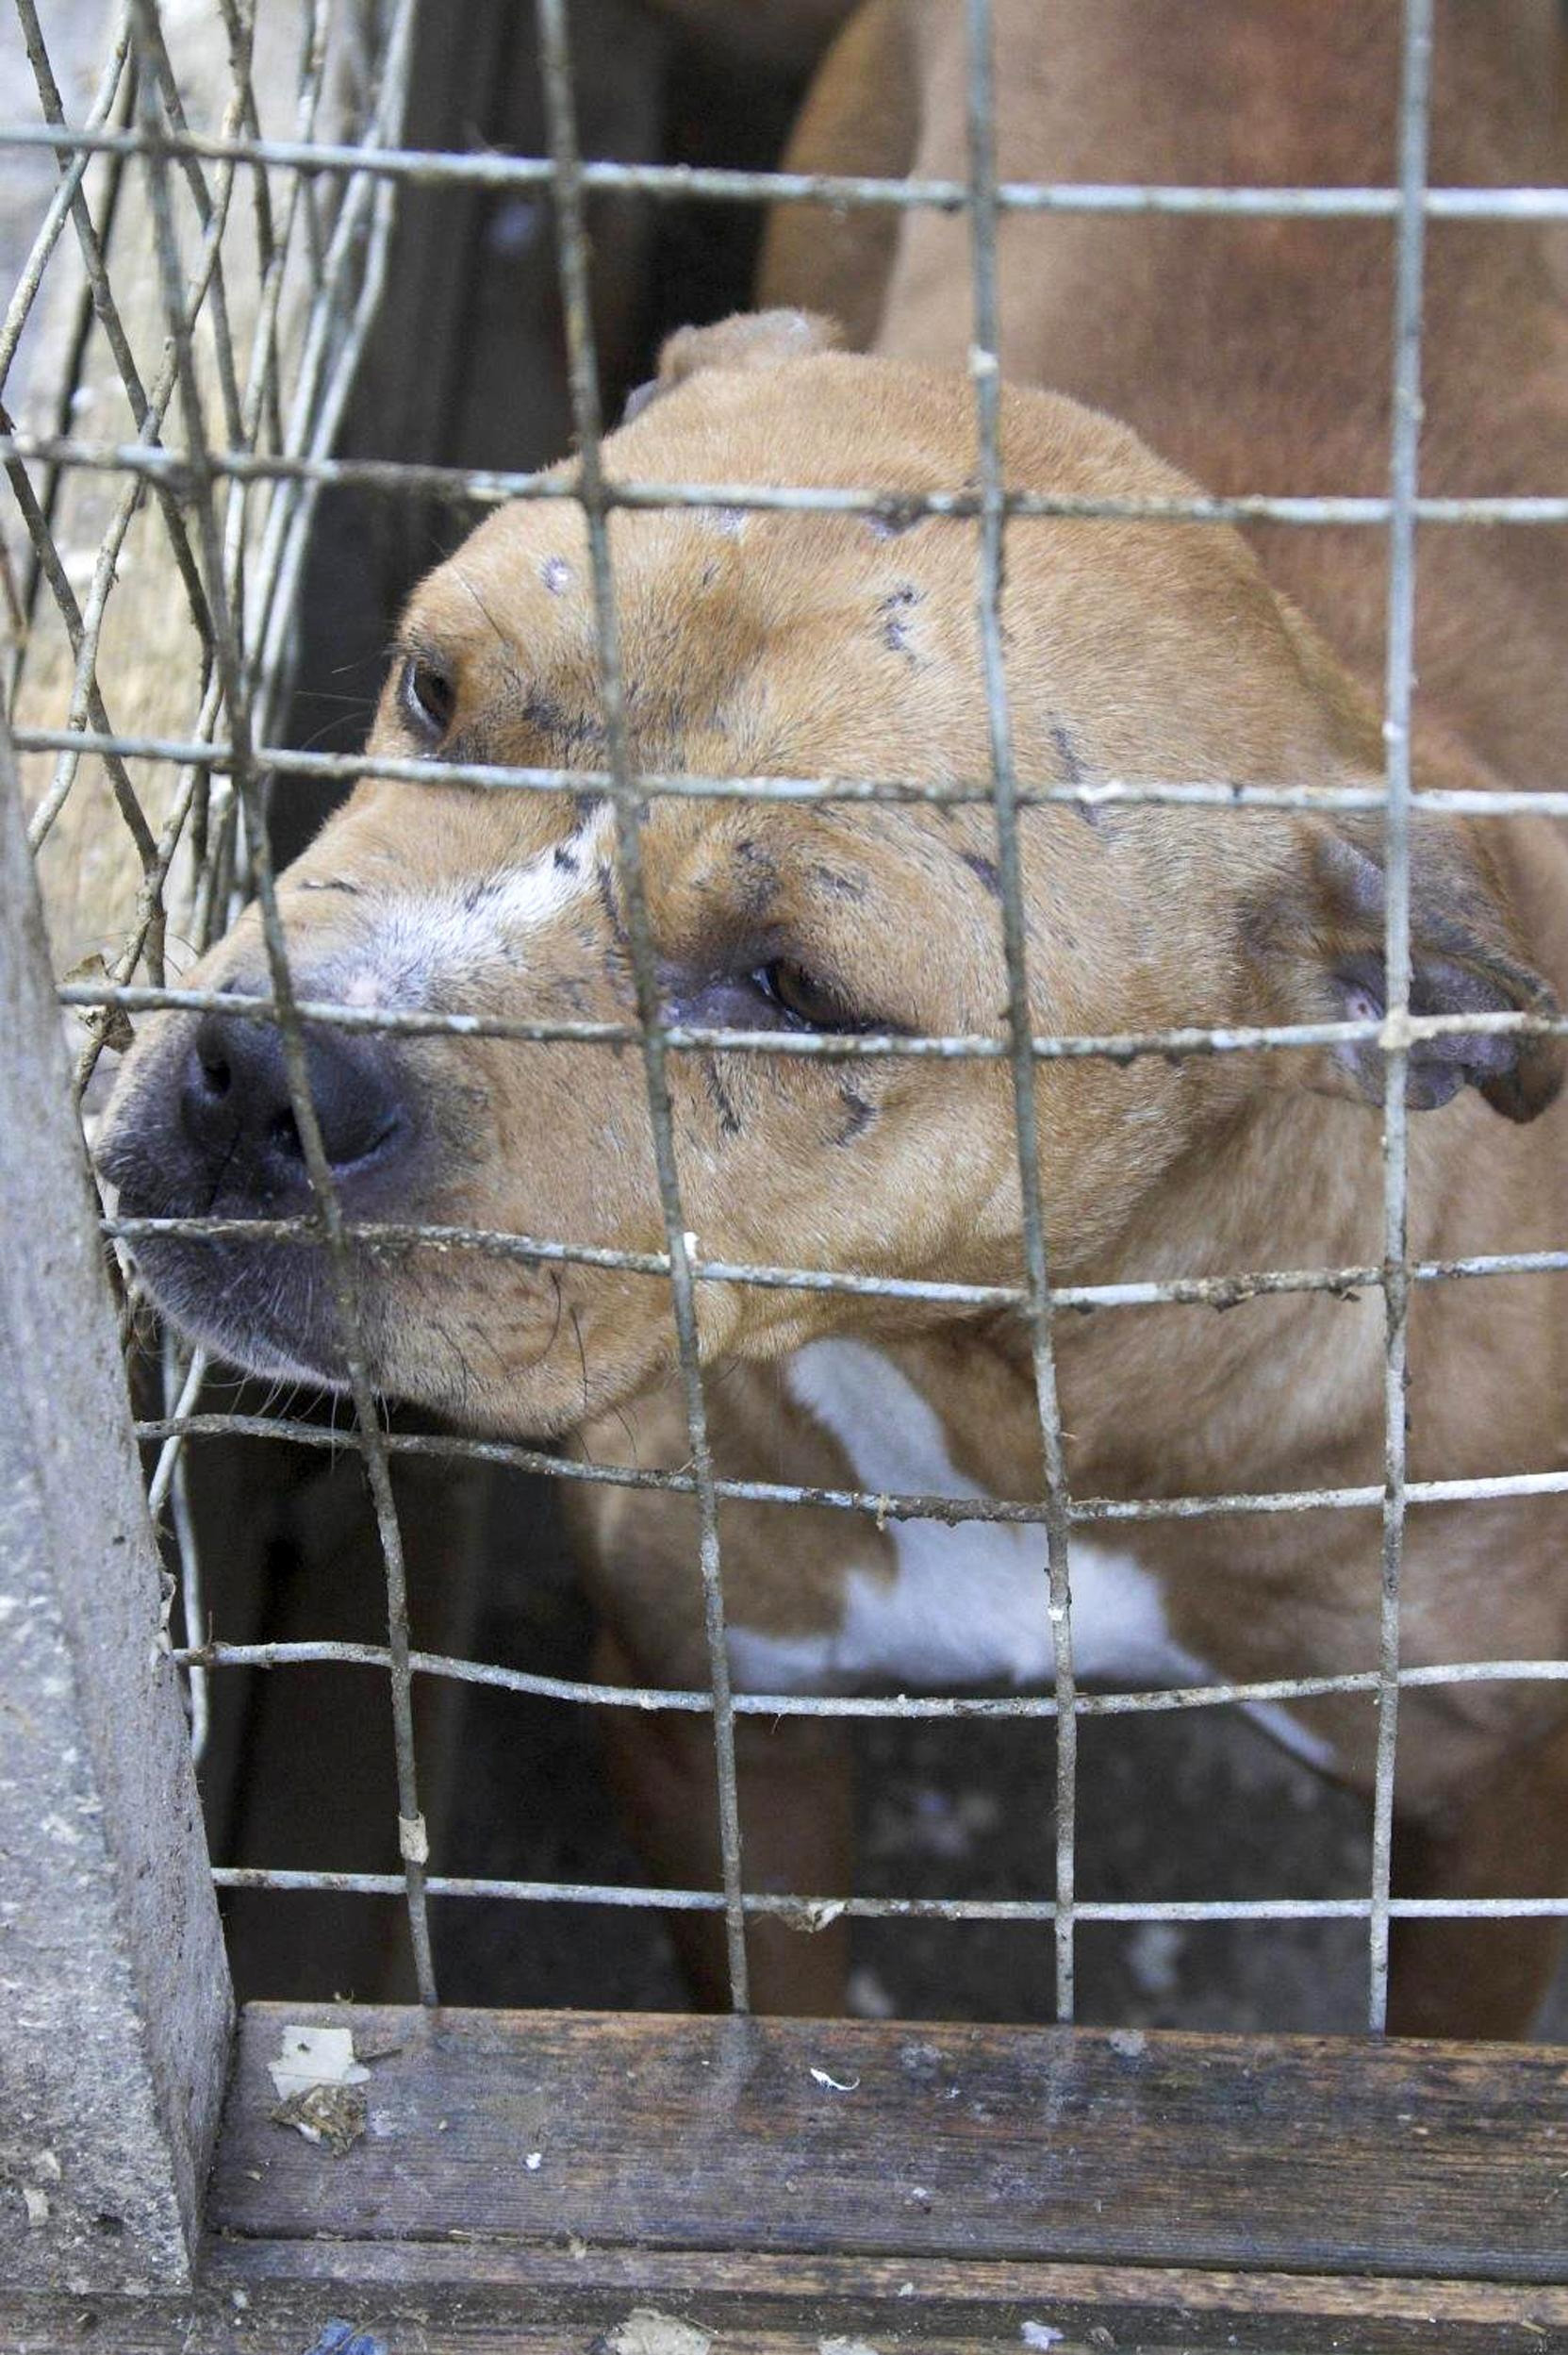 Why are animal cruelty convictions on the rise in Bradford?